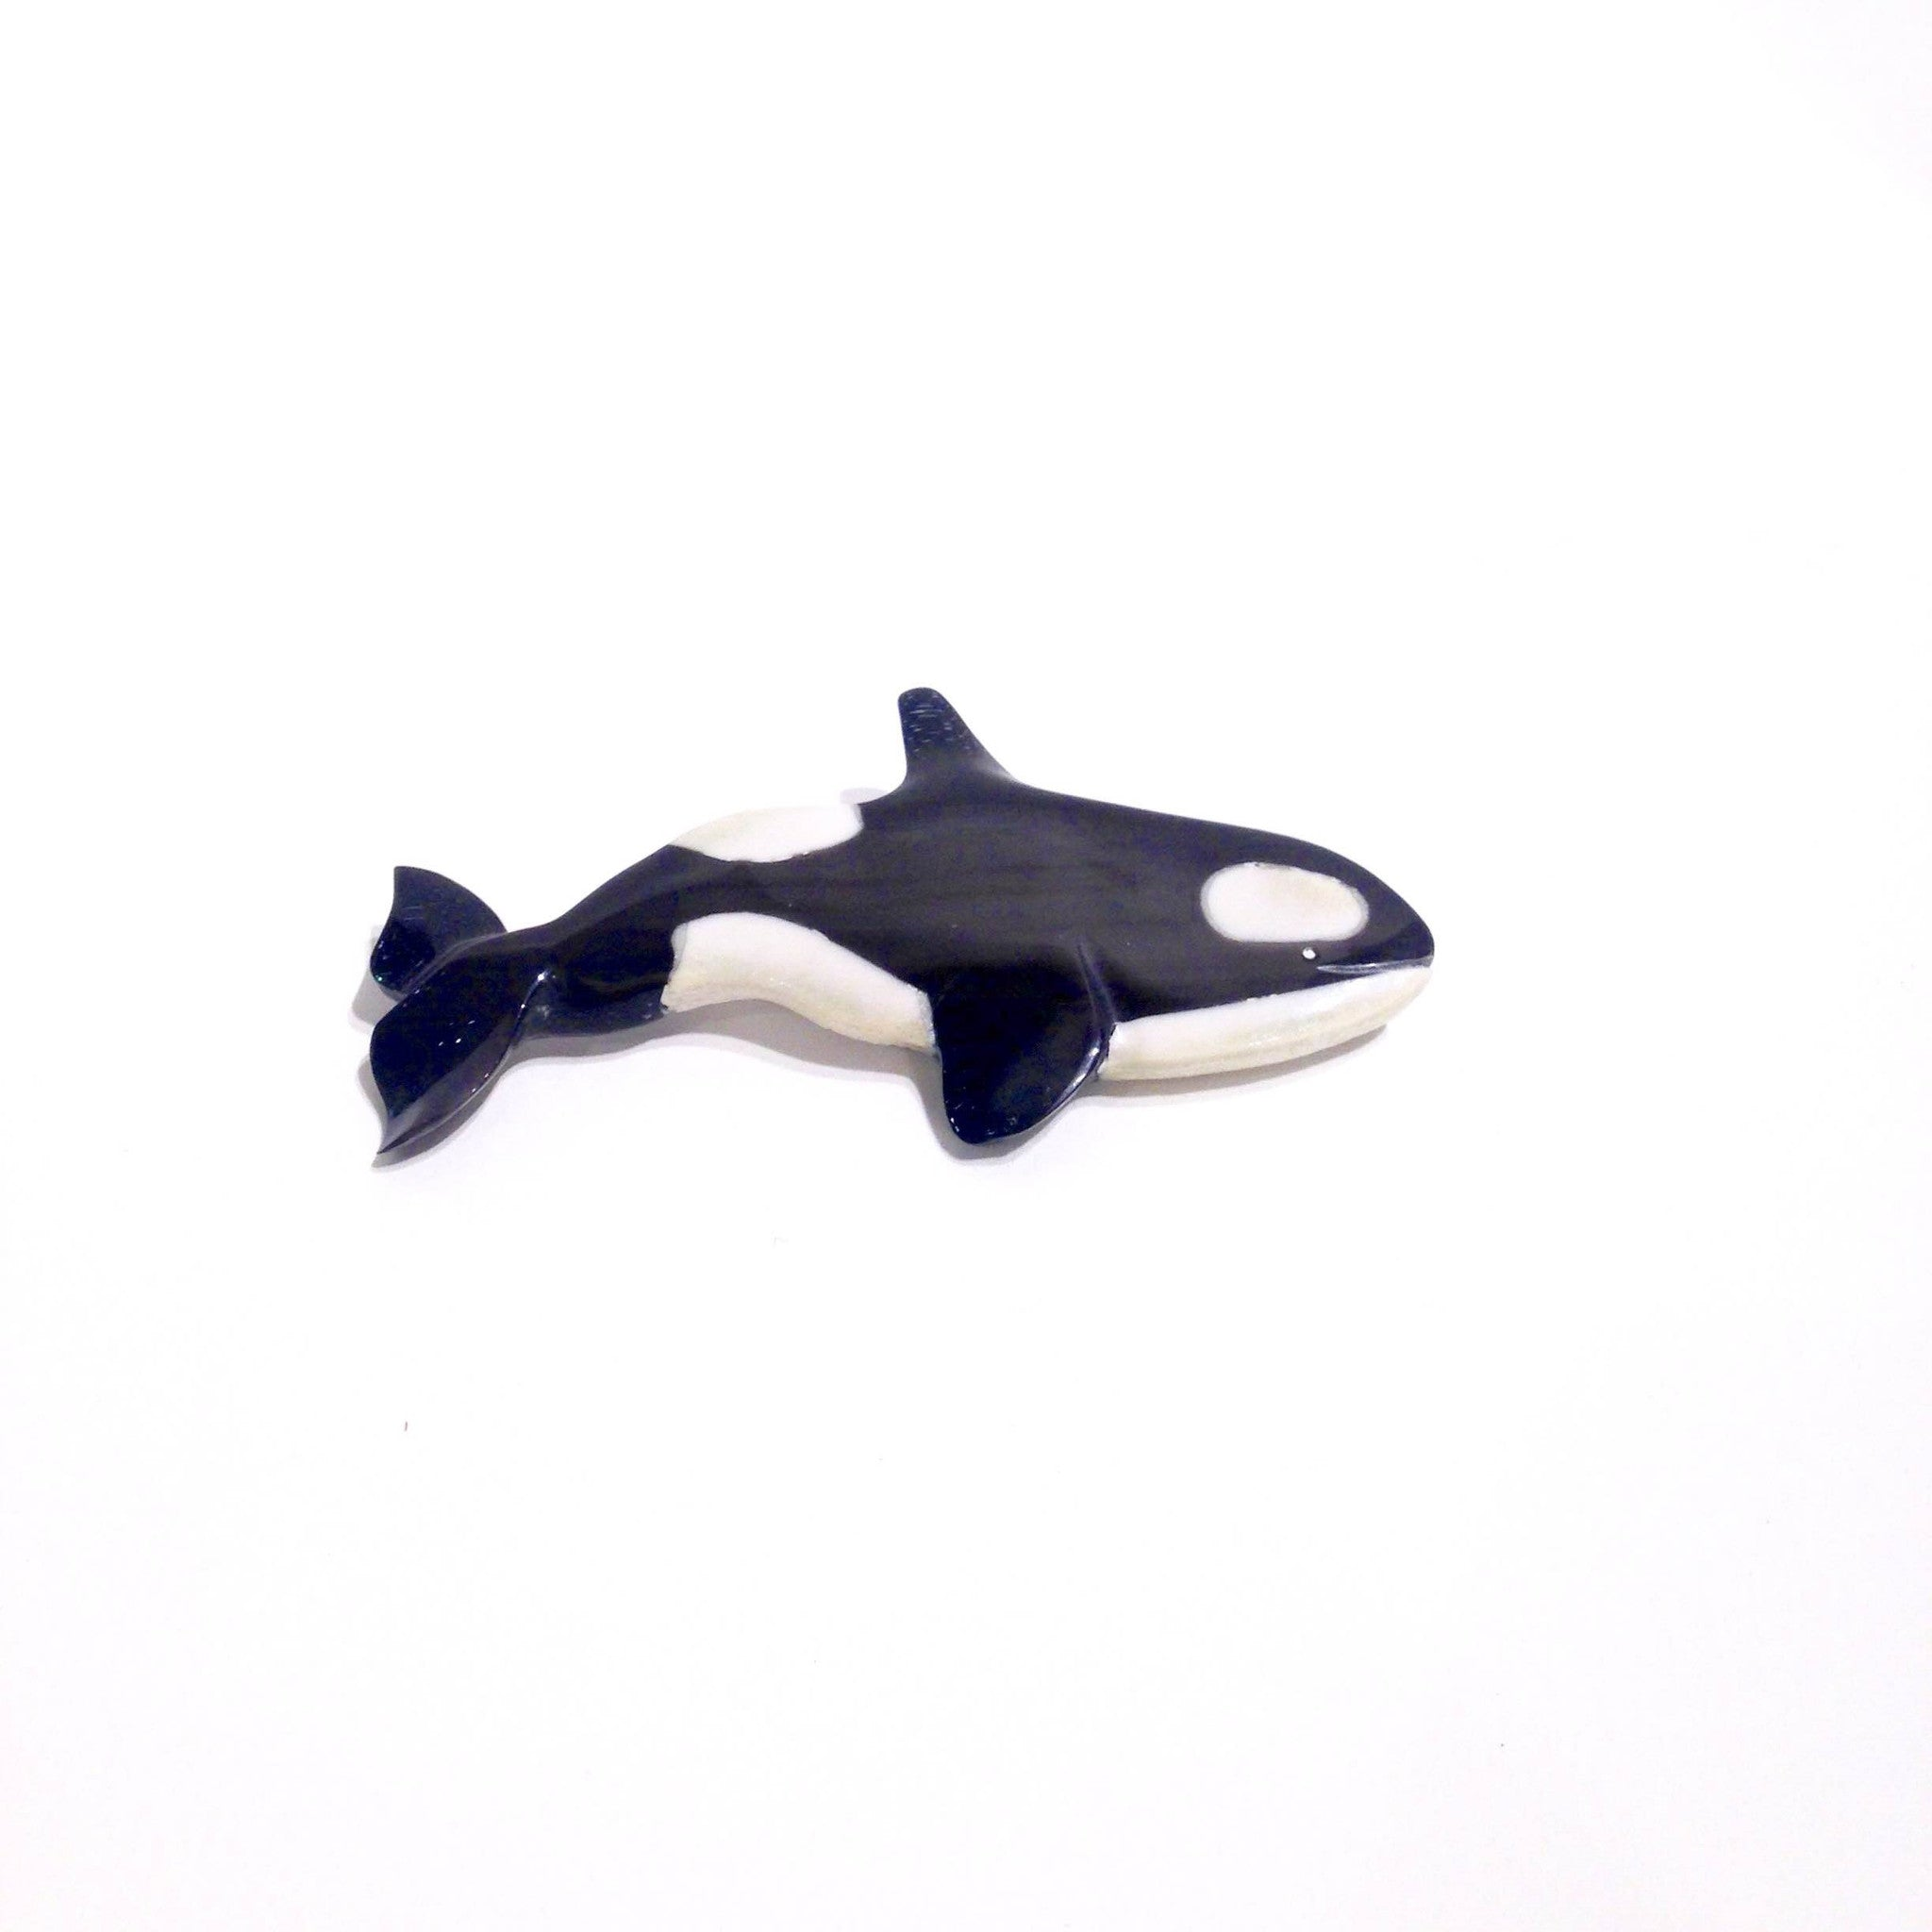 Killer Whale brooch made from Caribou antler by Andrew Nowdlak.